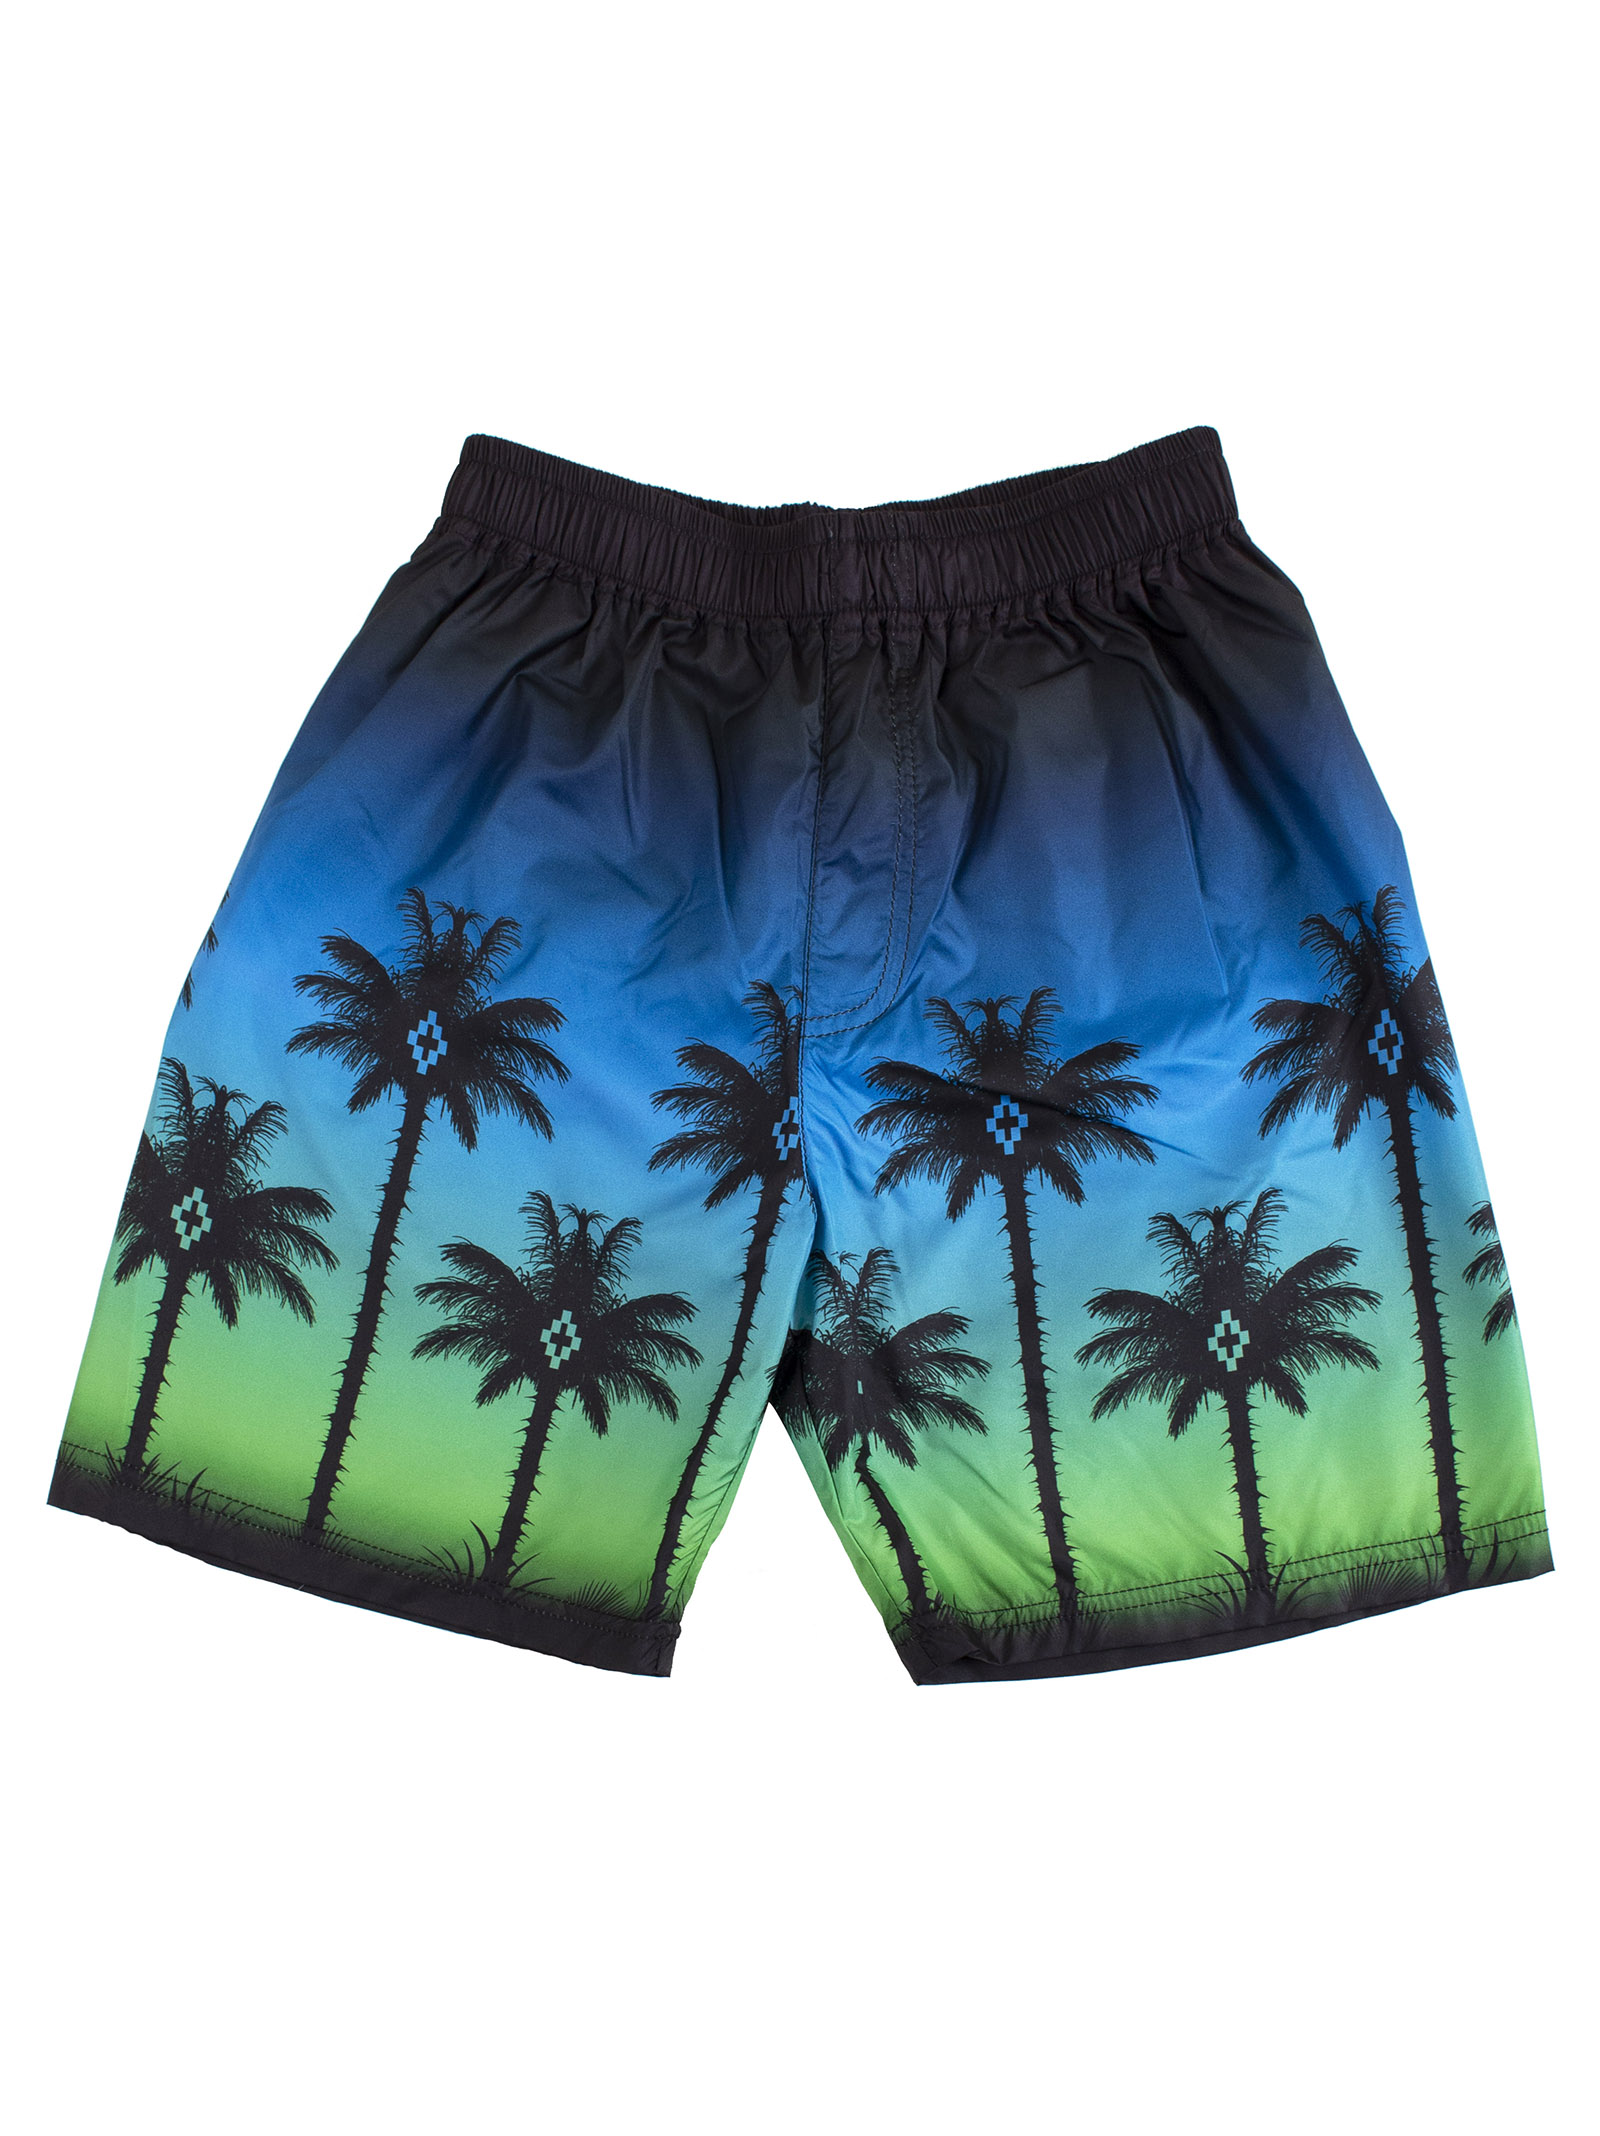 06ec0faf6a HOME / CATEGORIES / CLOTHING / BOXER / CHILD'S SWIMSUIT PRINTED WITH PALM  TREES /